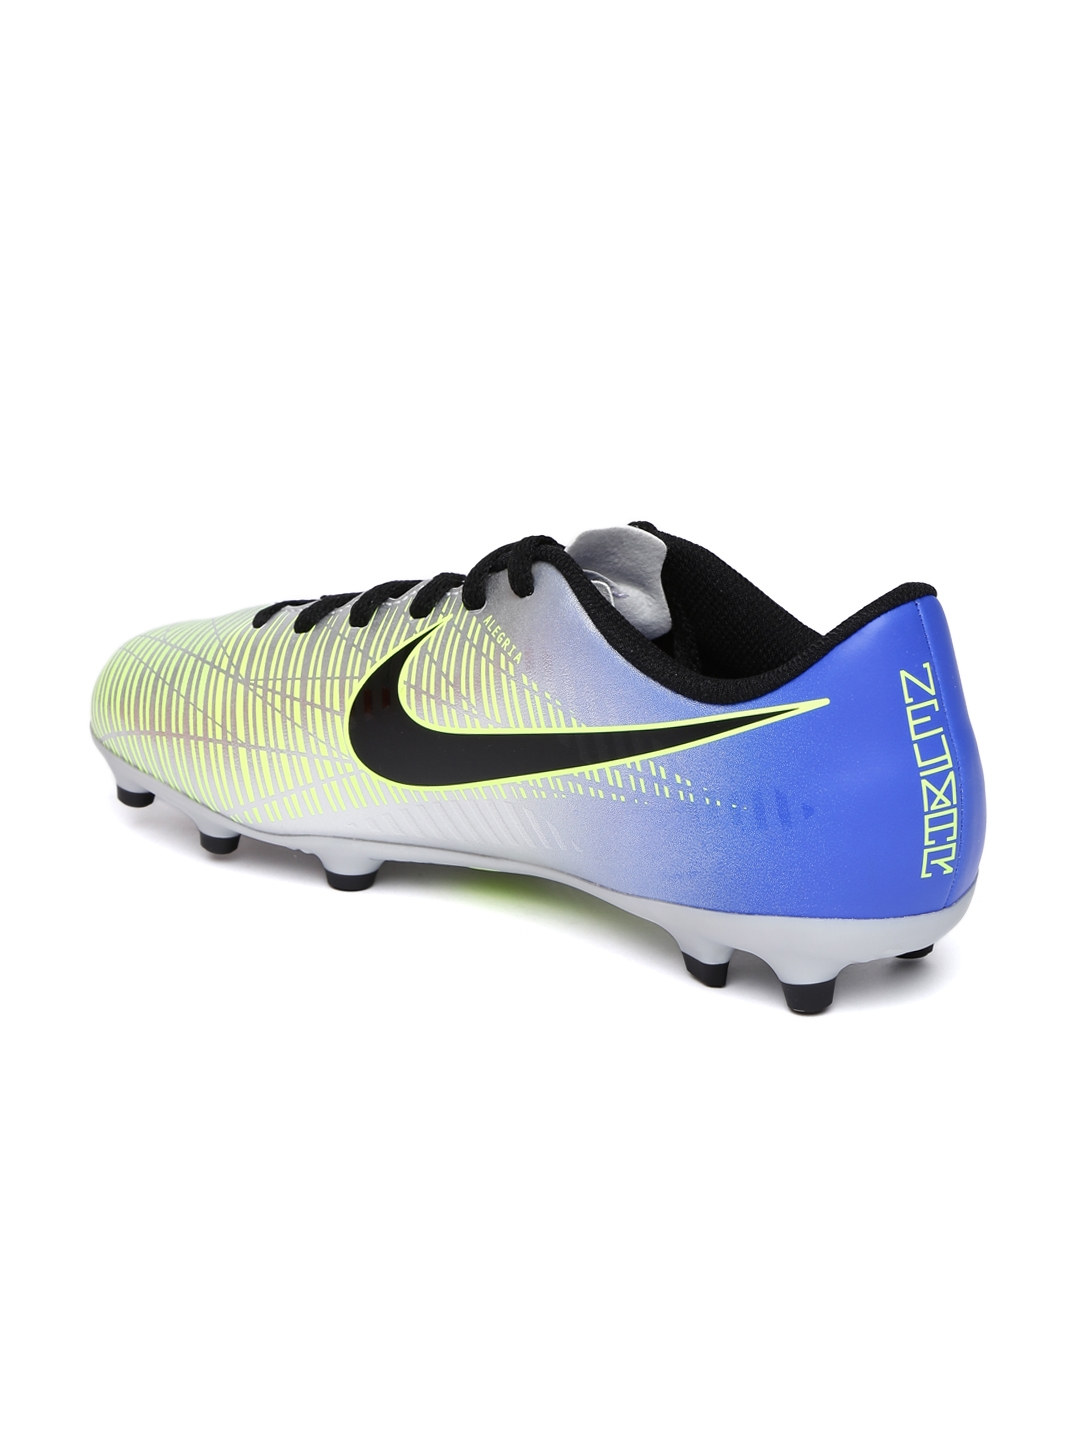 f870f9122 Nike Kids Silver-Toned MERCURIAL VORTEX III neymar firm ground Football  Shoes